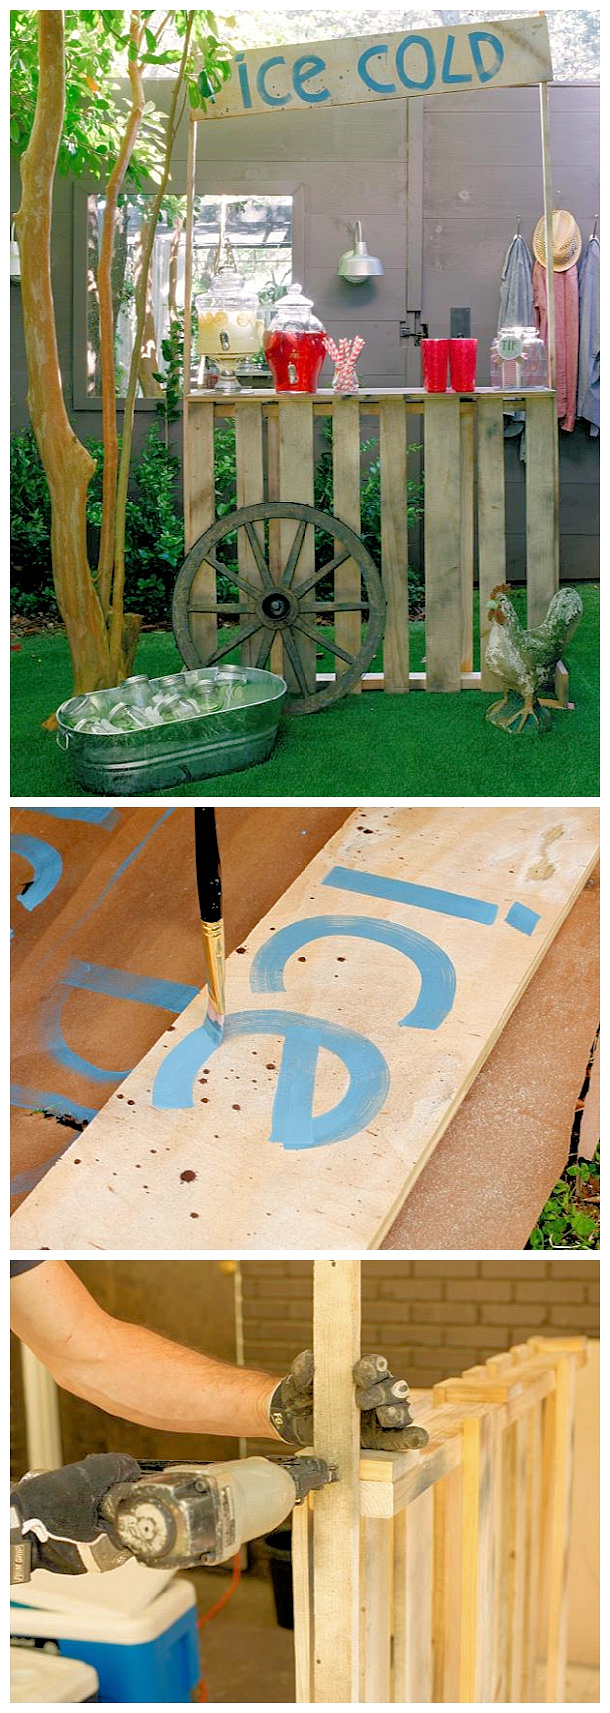 Diy pallet projects the best reclaimed wood upcycle ideas page 2 do it yourself pallet projects diy lemonade stand made from upcycled shipping pallets woodworking solutioingenieria